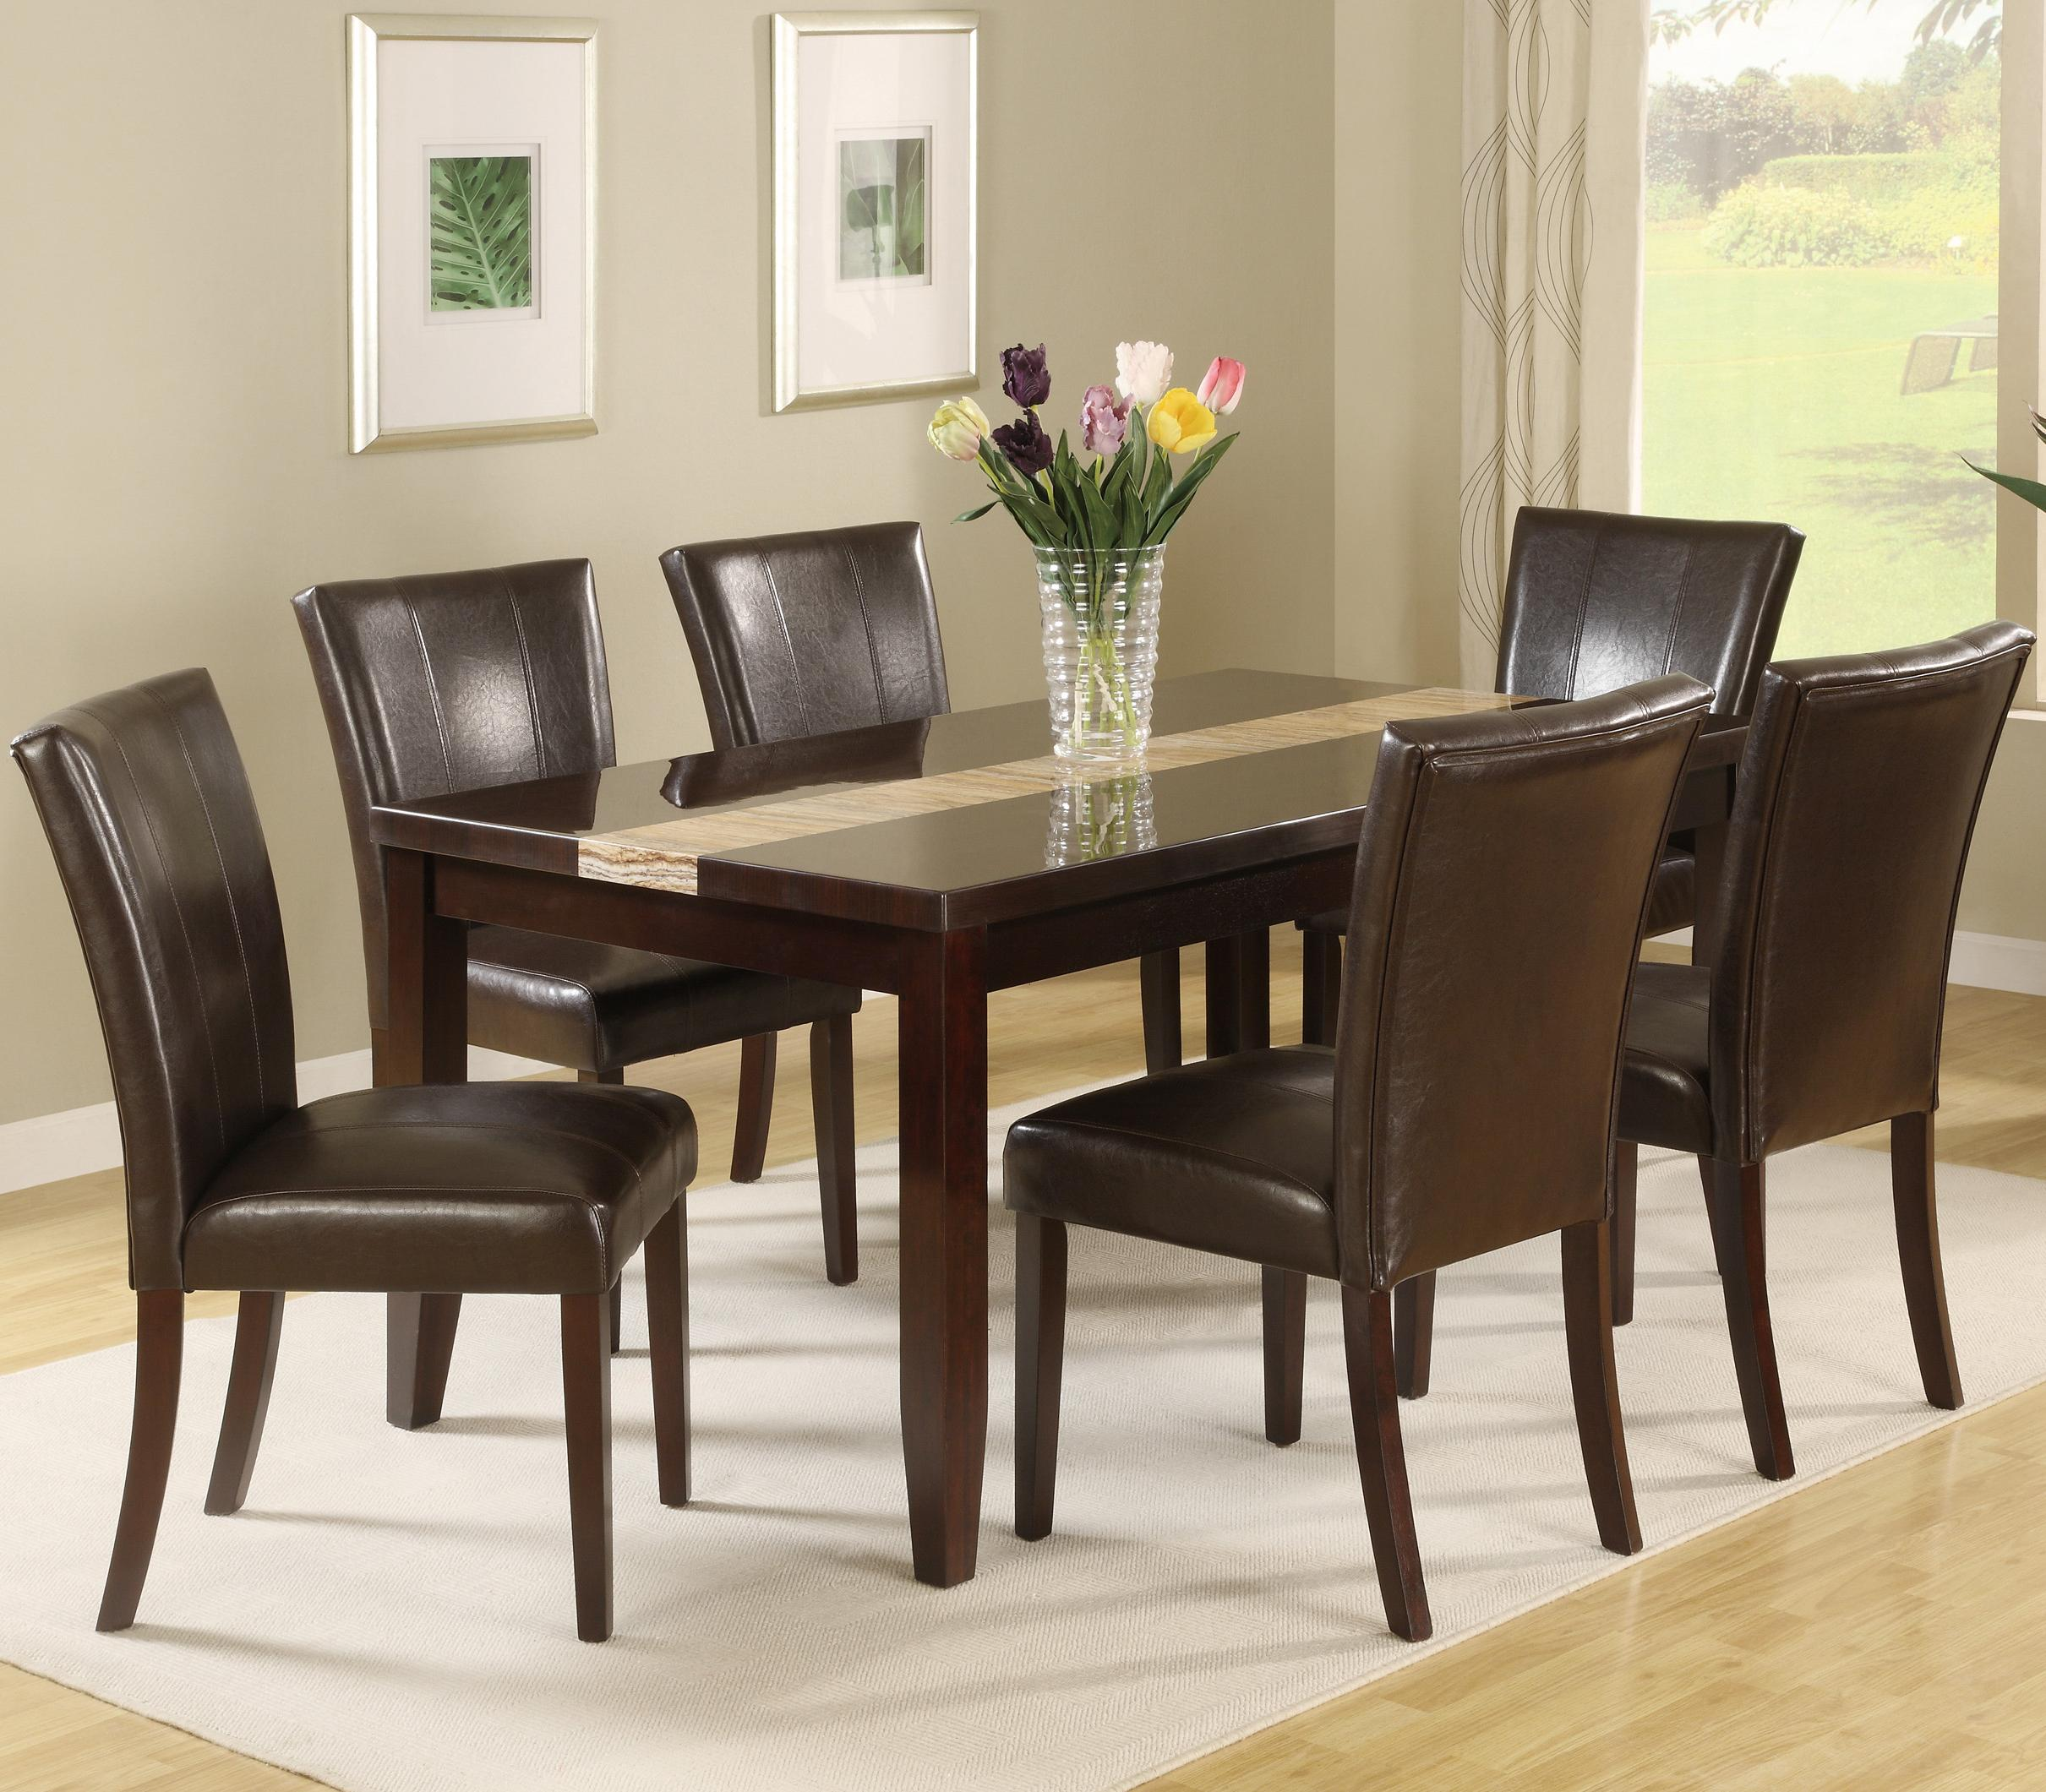 Crown Mark Madrid & Ferrara 7 Piece Dining Table Set - Item Number: 2223T-3864+6xS